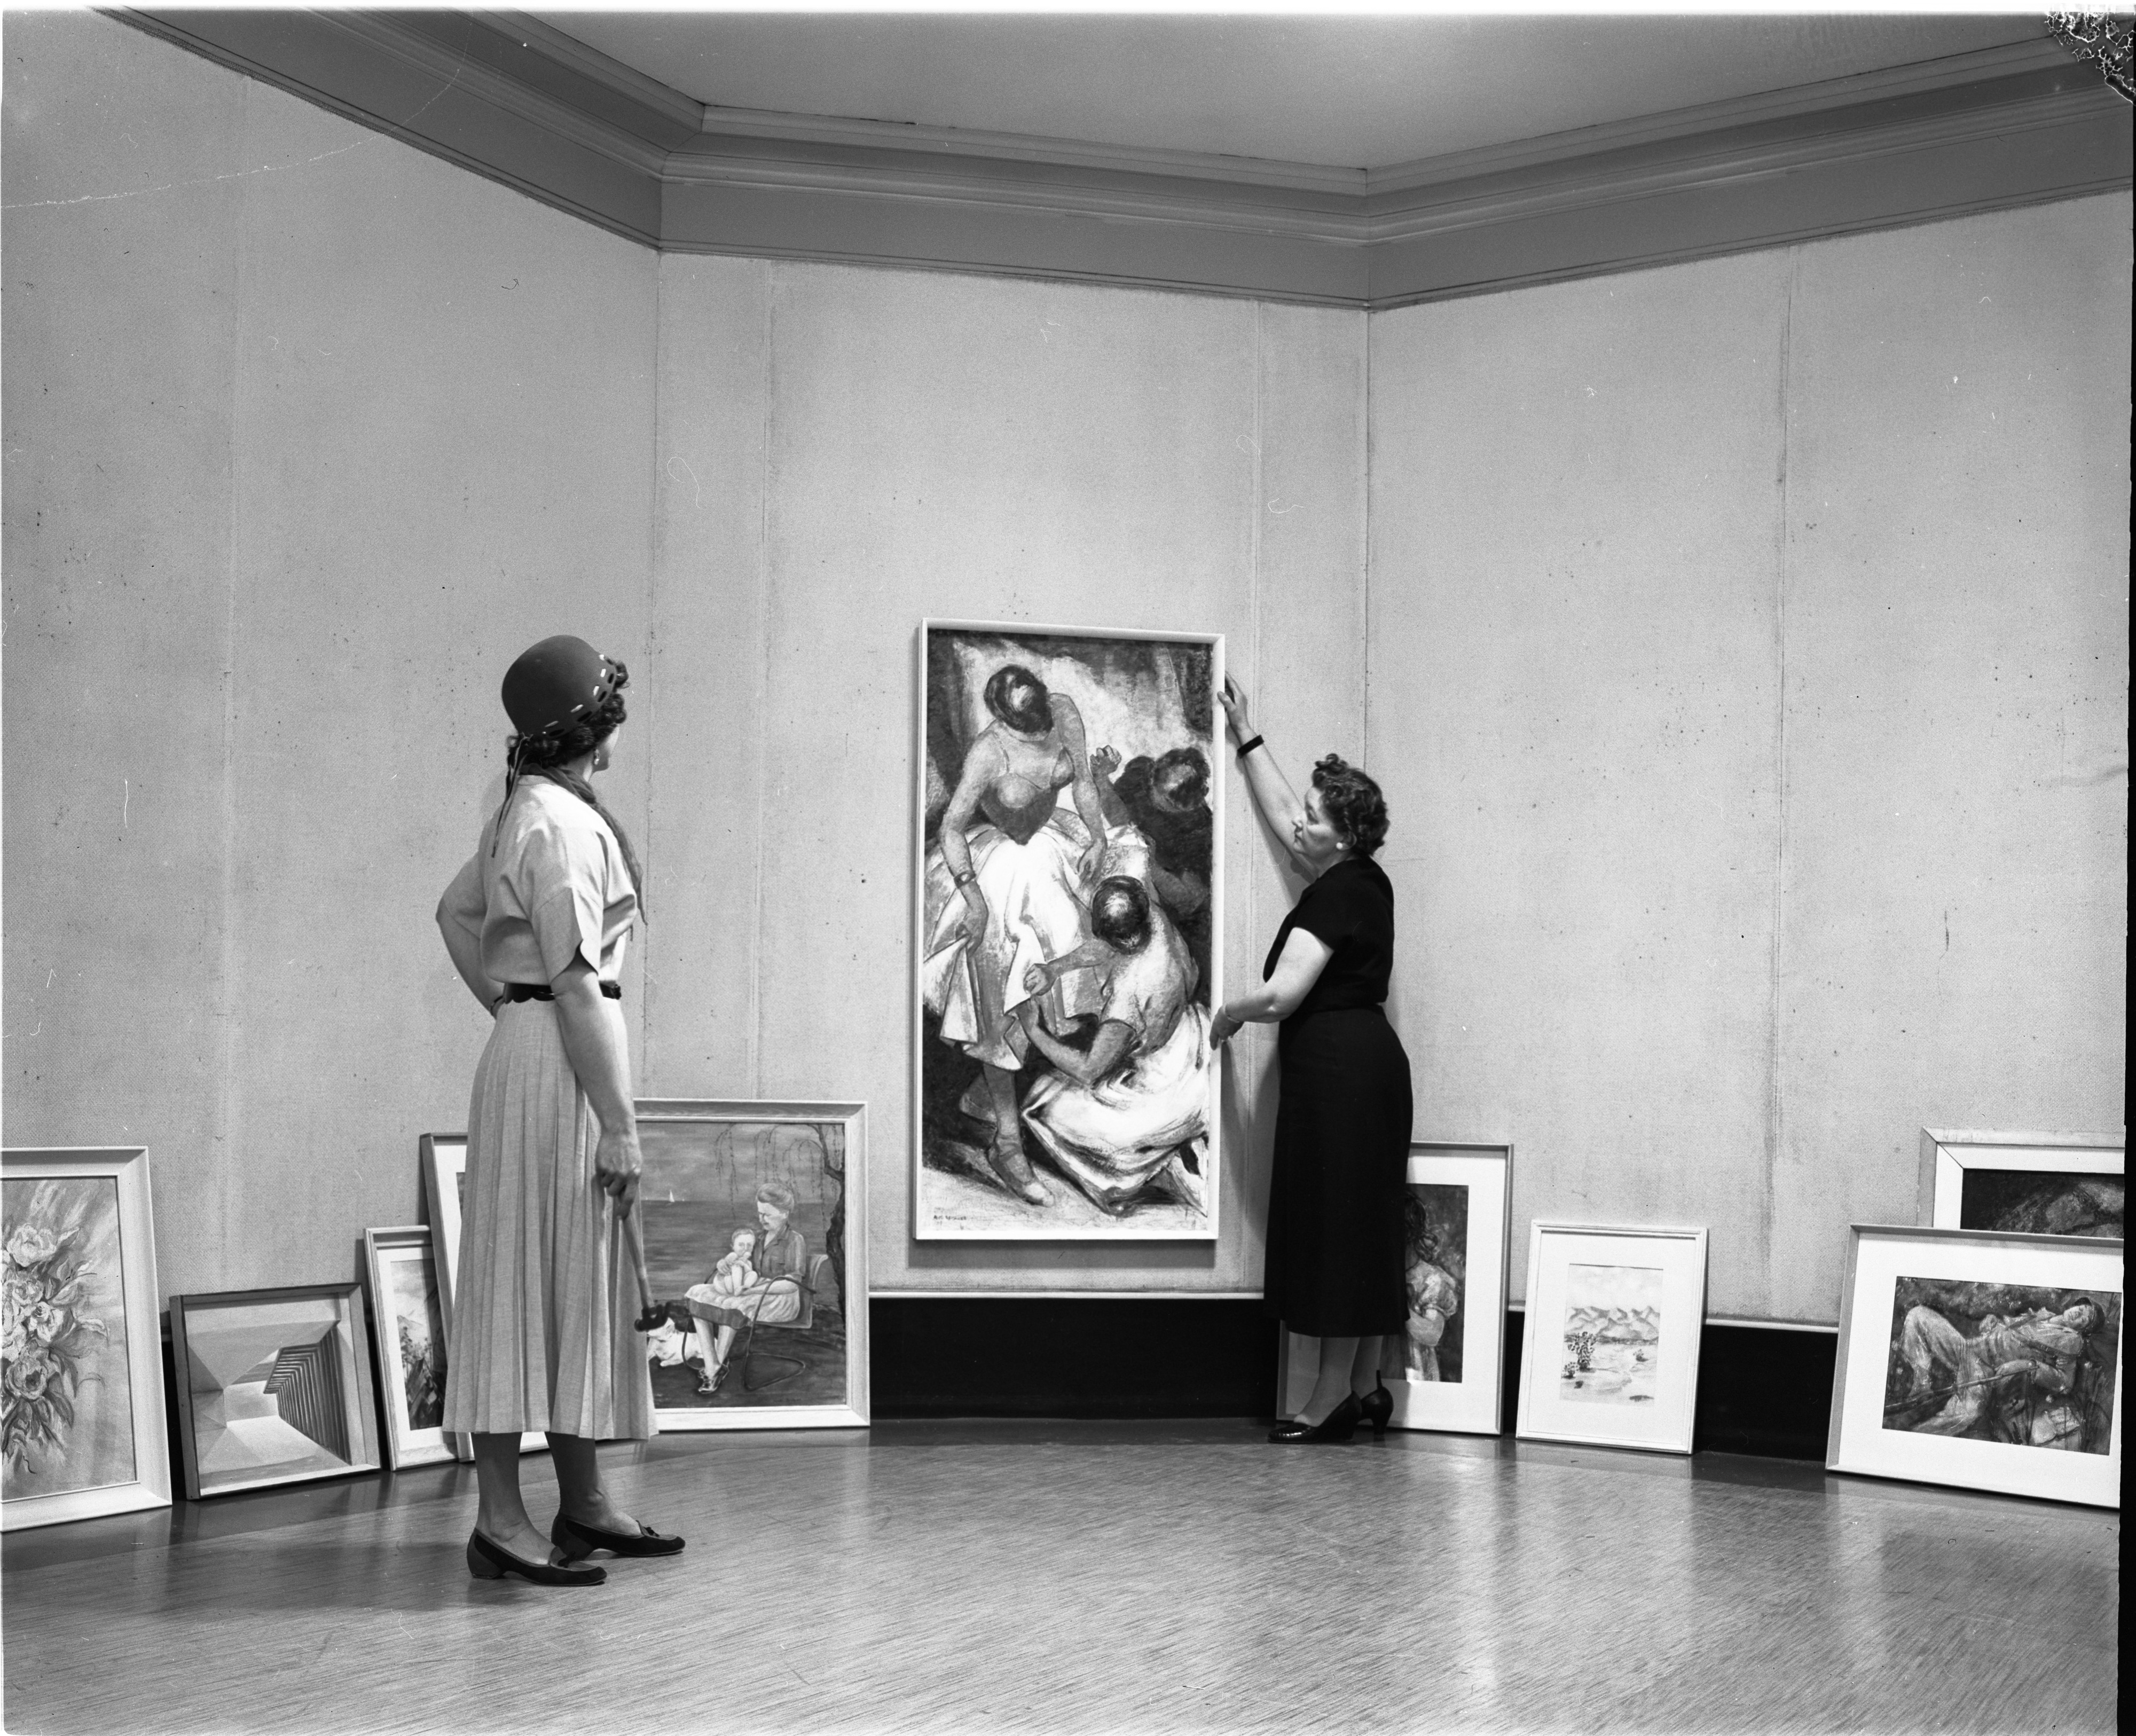 Two Women Hang Paintings At Ann Arbor Art Show, March 1956 image